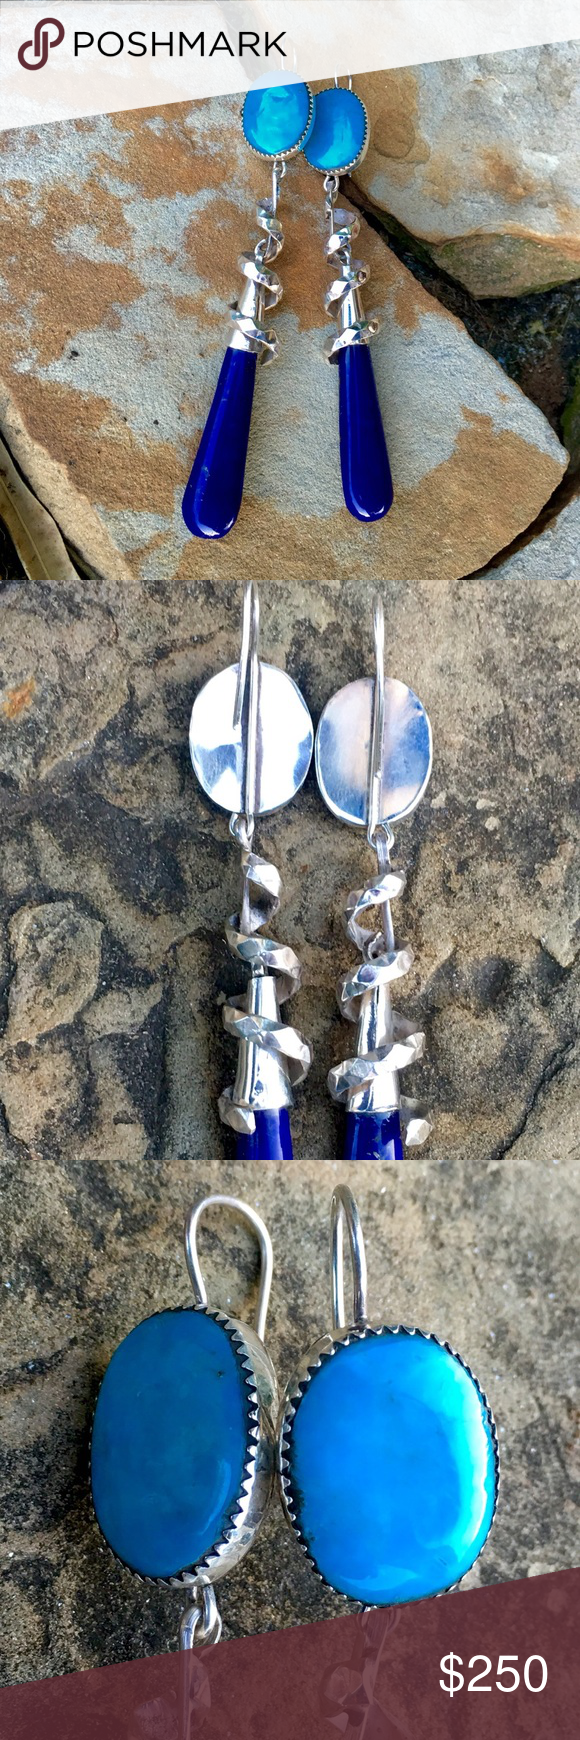 """4.25"""" Sterling Lapis & Turquoise Dangle Earrings Hand Wrought in Sterling by Spanish Master Carver Silversmith Francisco Gomez, these STUNNING! 4 1/4"""" """"Twirling and Dangling"""" Turquoise & Lapis Masterpieces are like none other! Fish hook style, with a Saw Tooth Bezel set 16x20mm Turquoise Cab on top, with """"Diamond"""" shaped hammered twirling Silver over a hook & Silver cone holding the 12x40mm Polished Lapis Pendulum. WOW!! 25g Francisco Gomez Jewelry Earrings"""